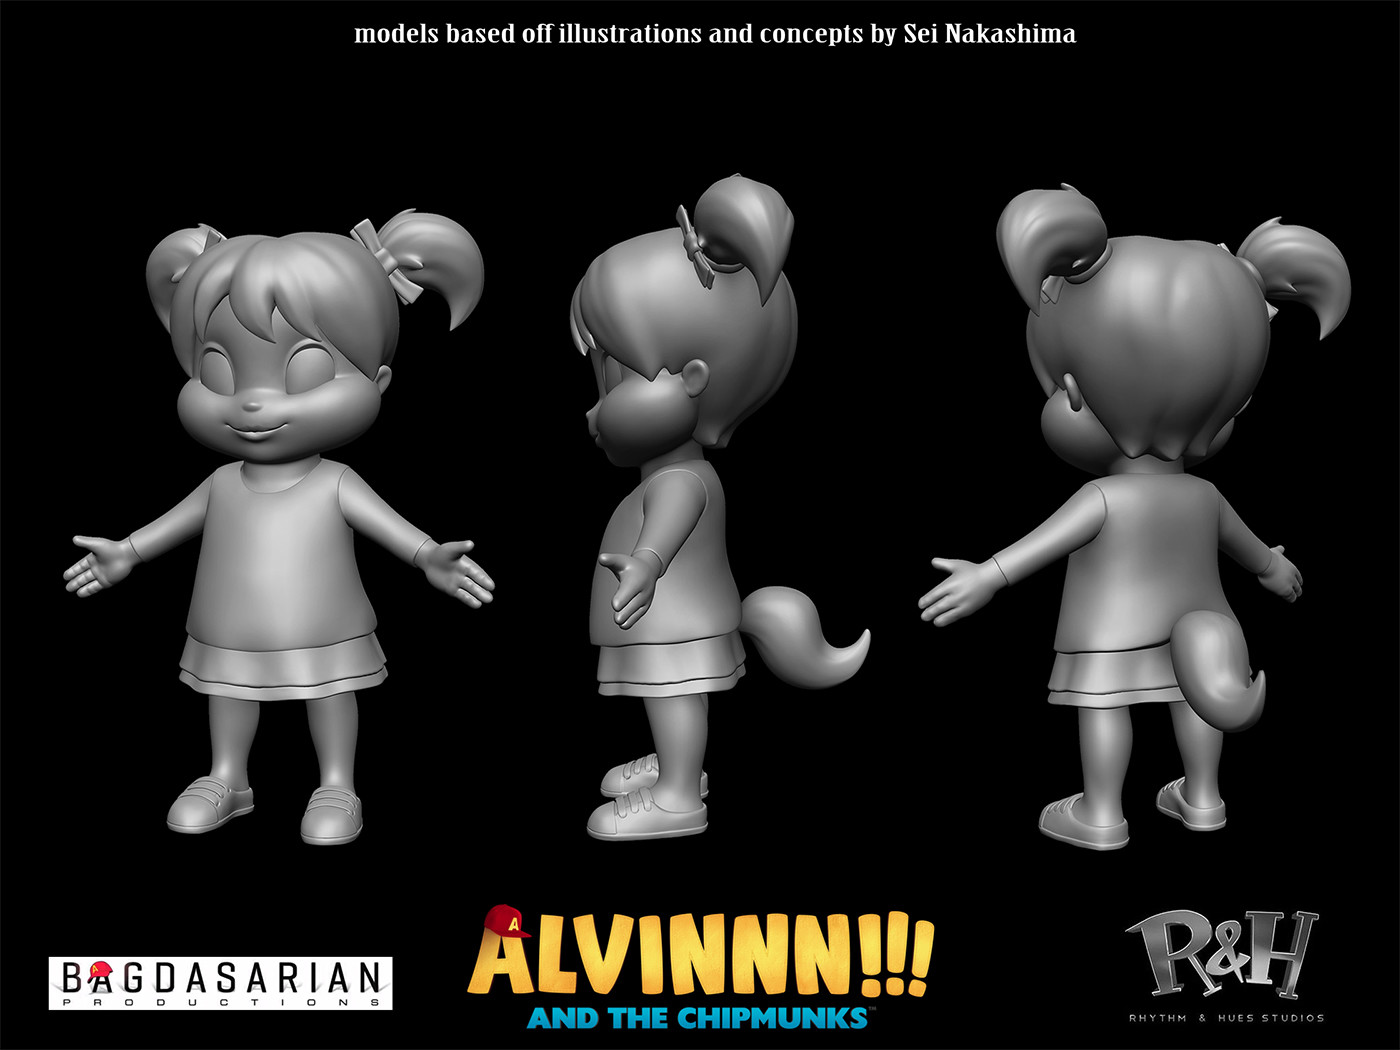 Alvinnn And The Chipmunks Brittany And Alvin artstation - alvinnn!!! and the chipmunks, trevor crandall